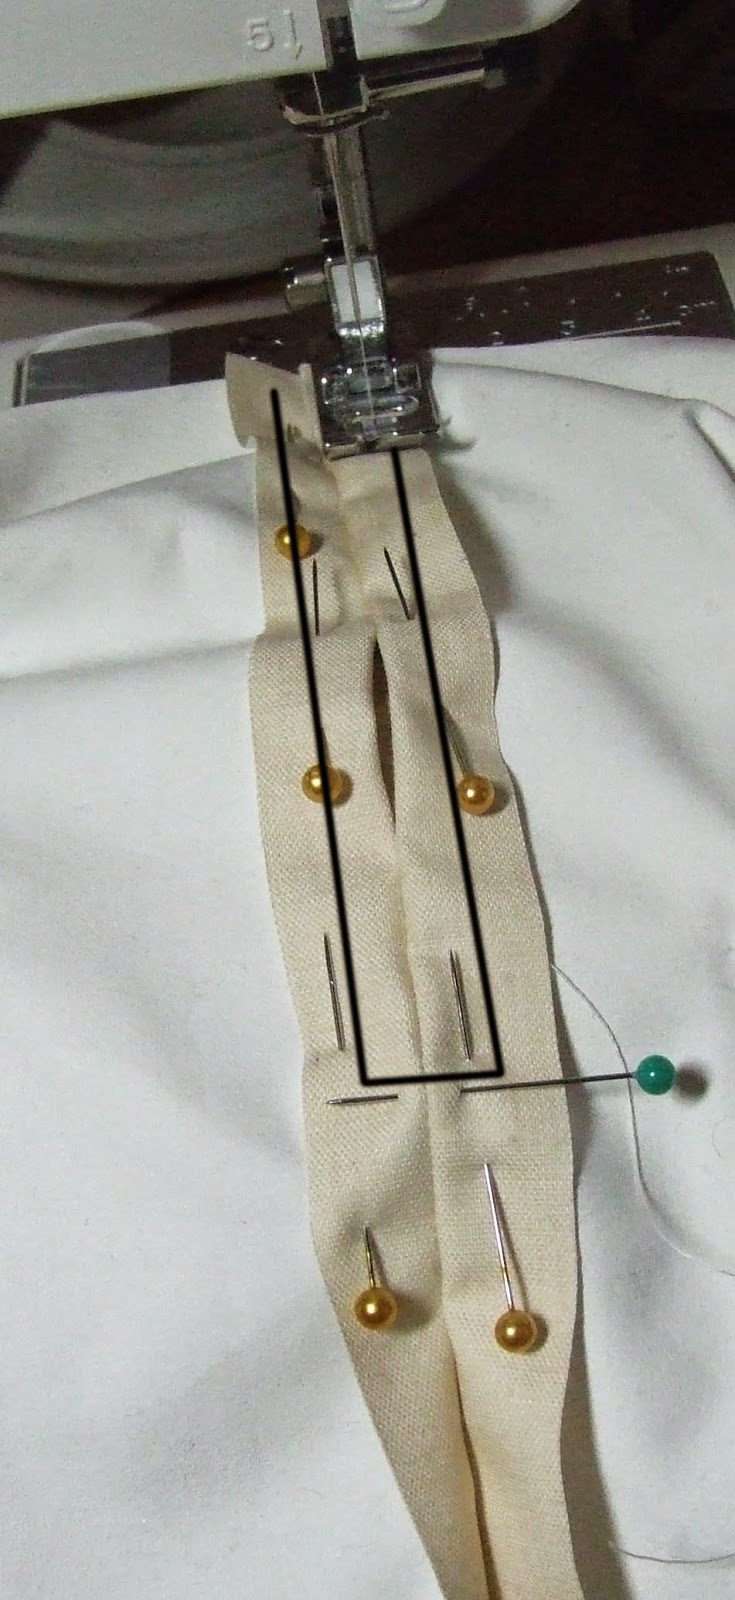 Sew round hole for string